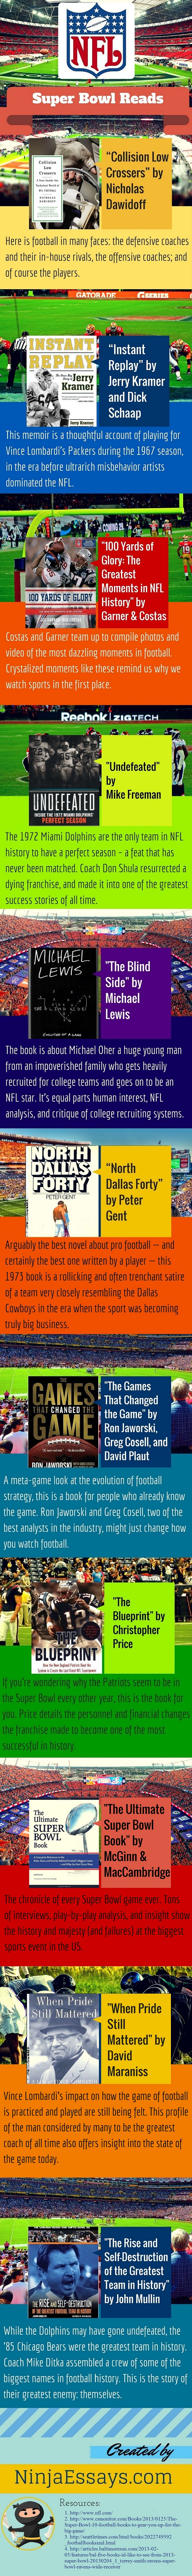 Best NFL Reads